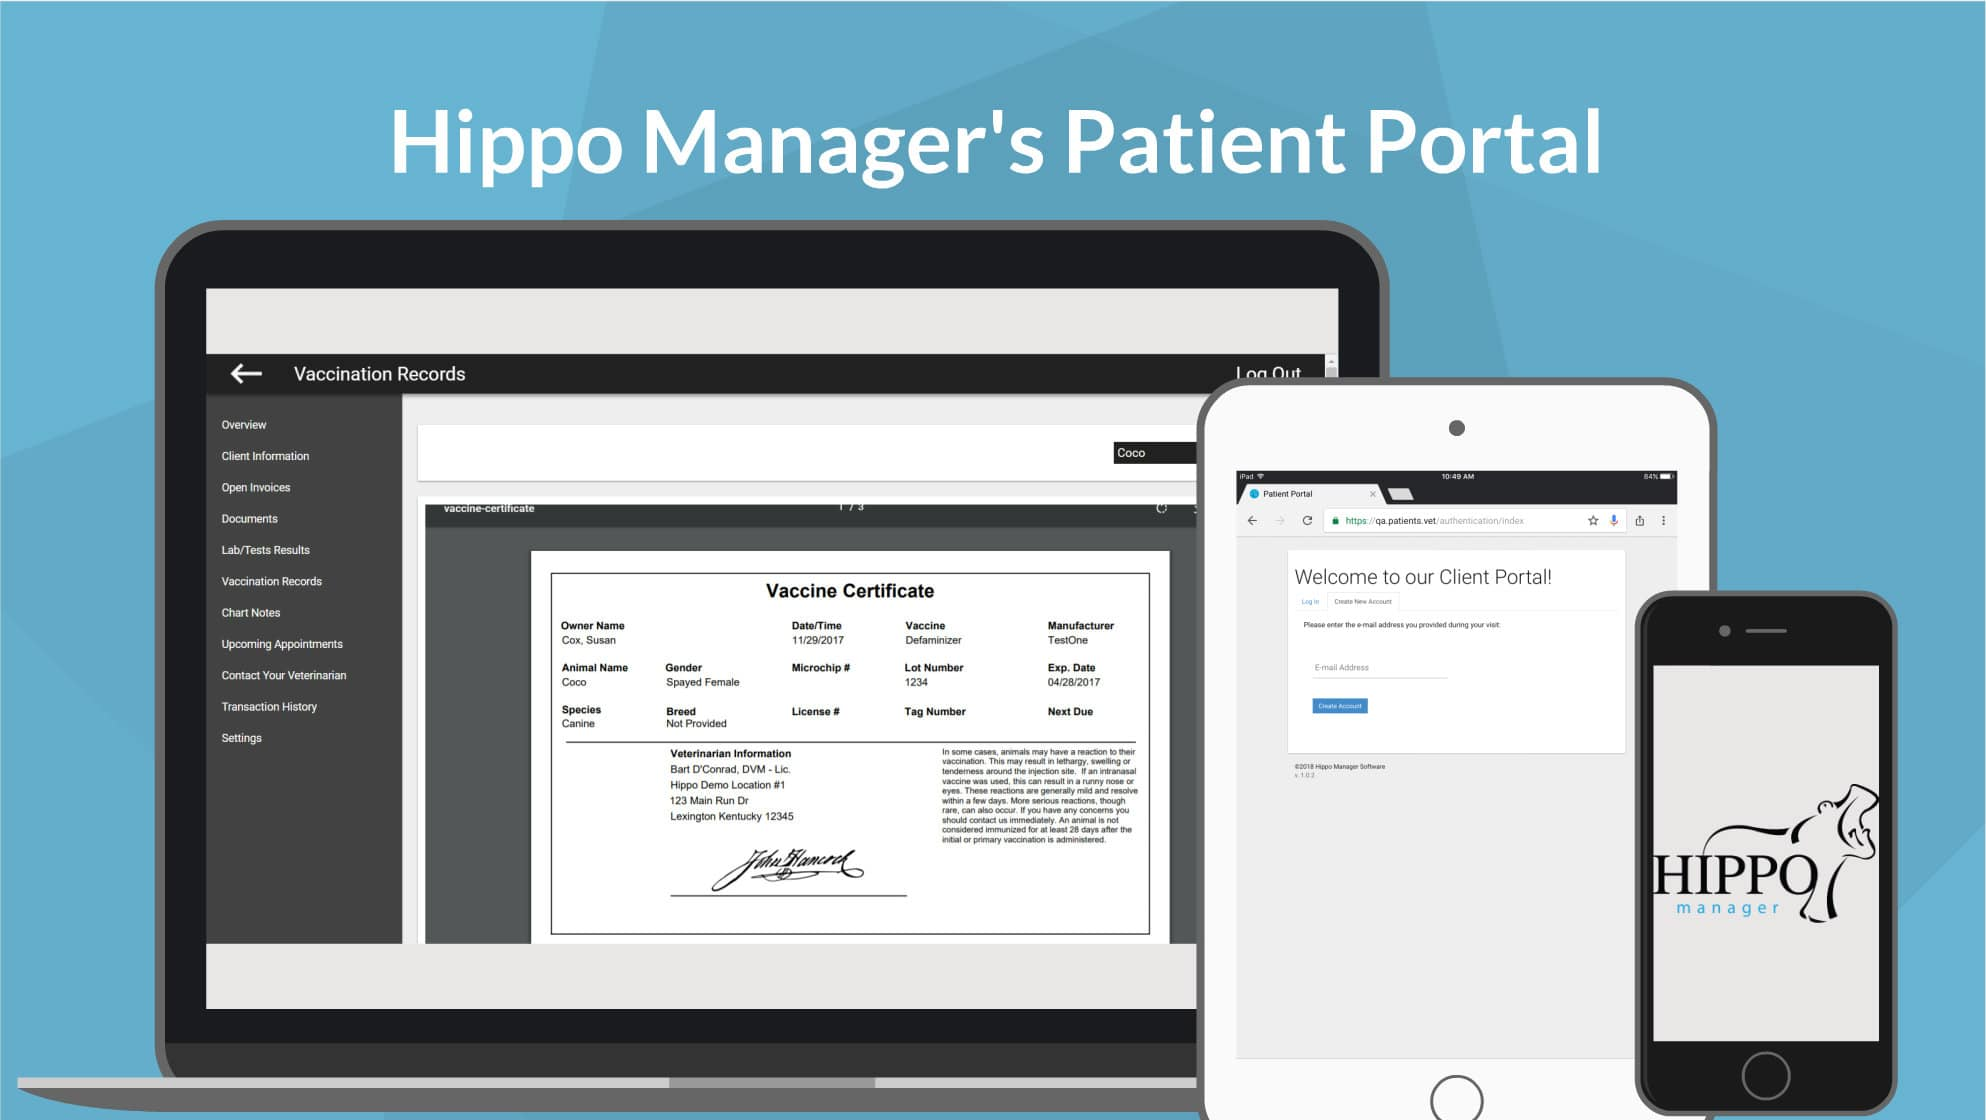 hippo manager veterinary software Patient Portal